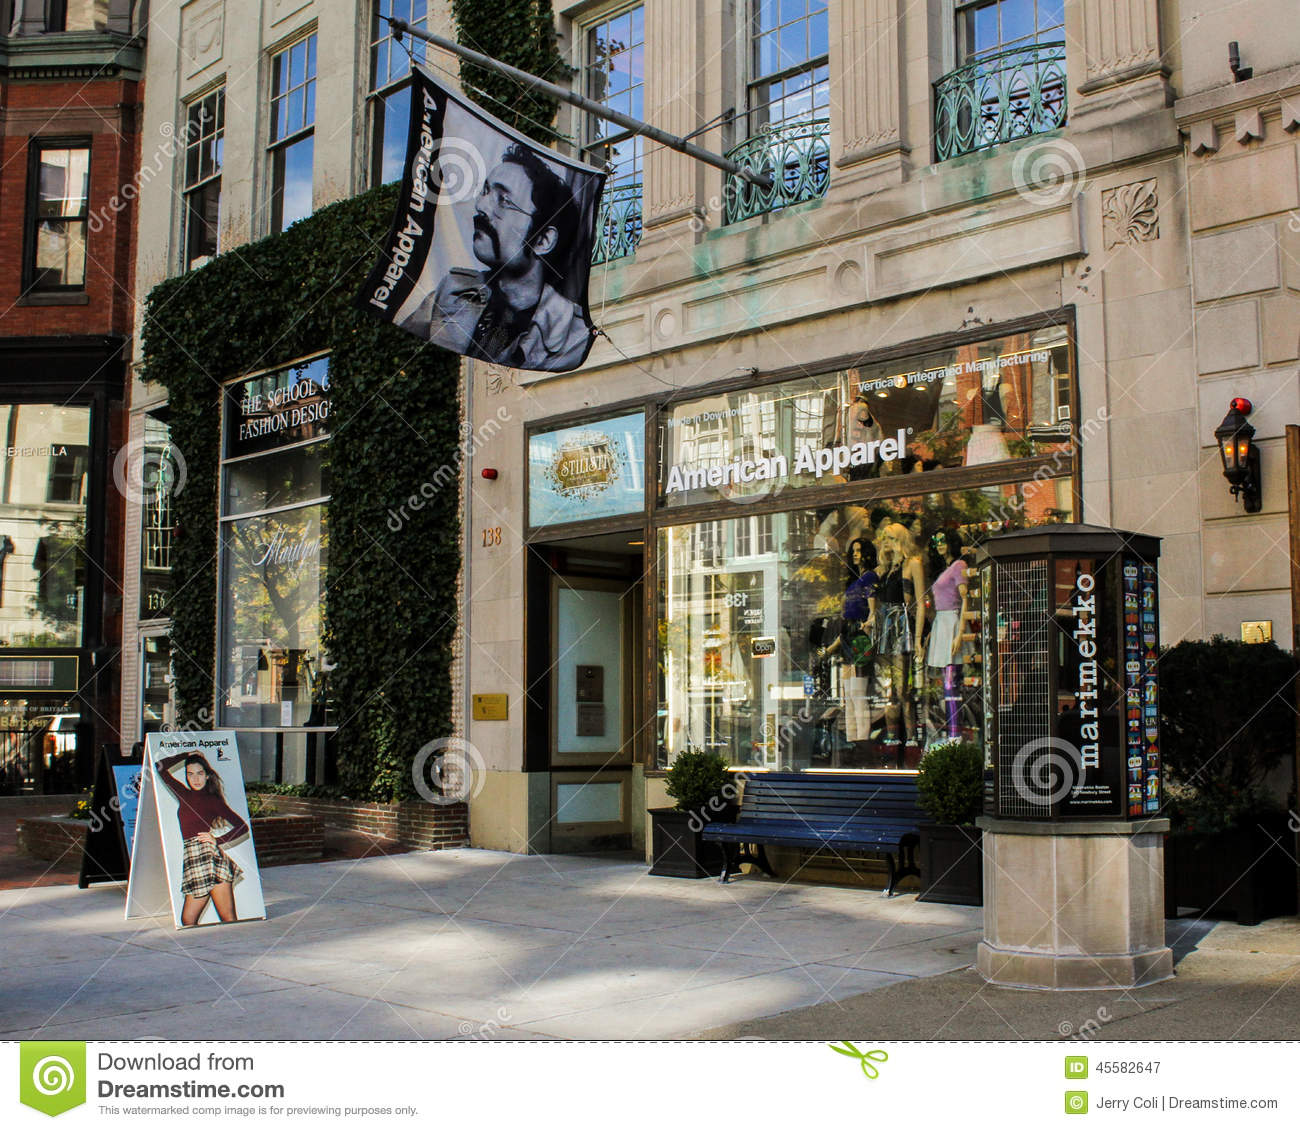 54 Newbury St Photos Free Royalty Free Stock Photos From Dreamstime